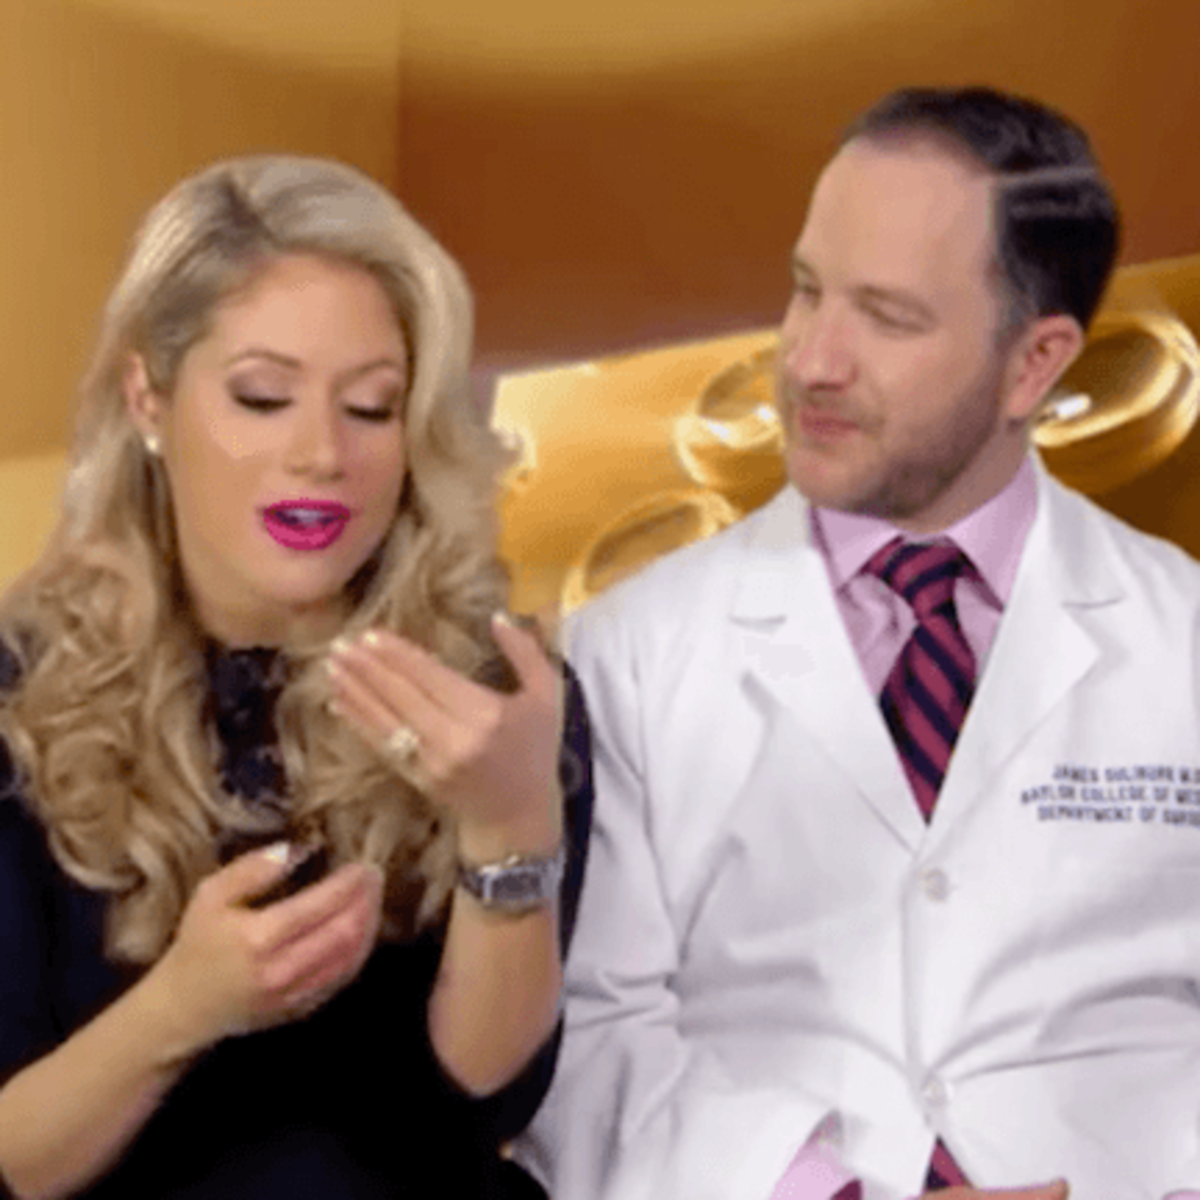 79bce0050a8c Married to Medicine Houston episode 5 Rachel and James iPhone love